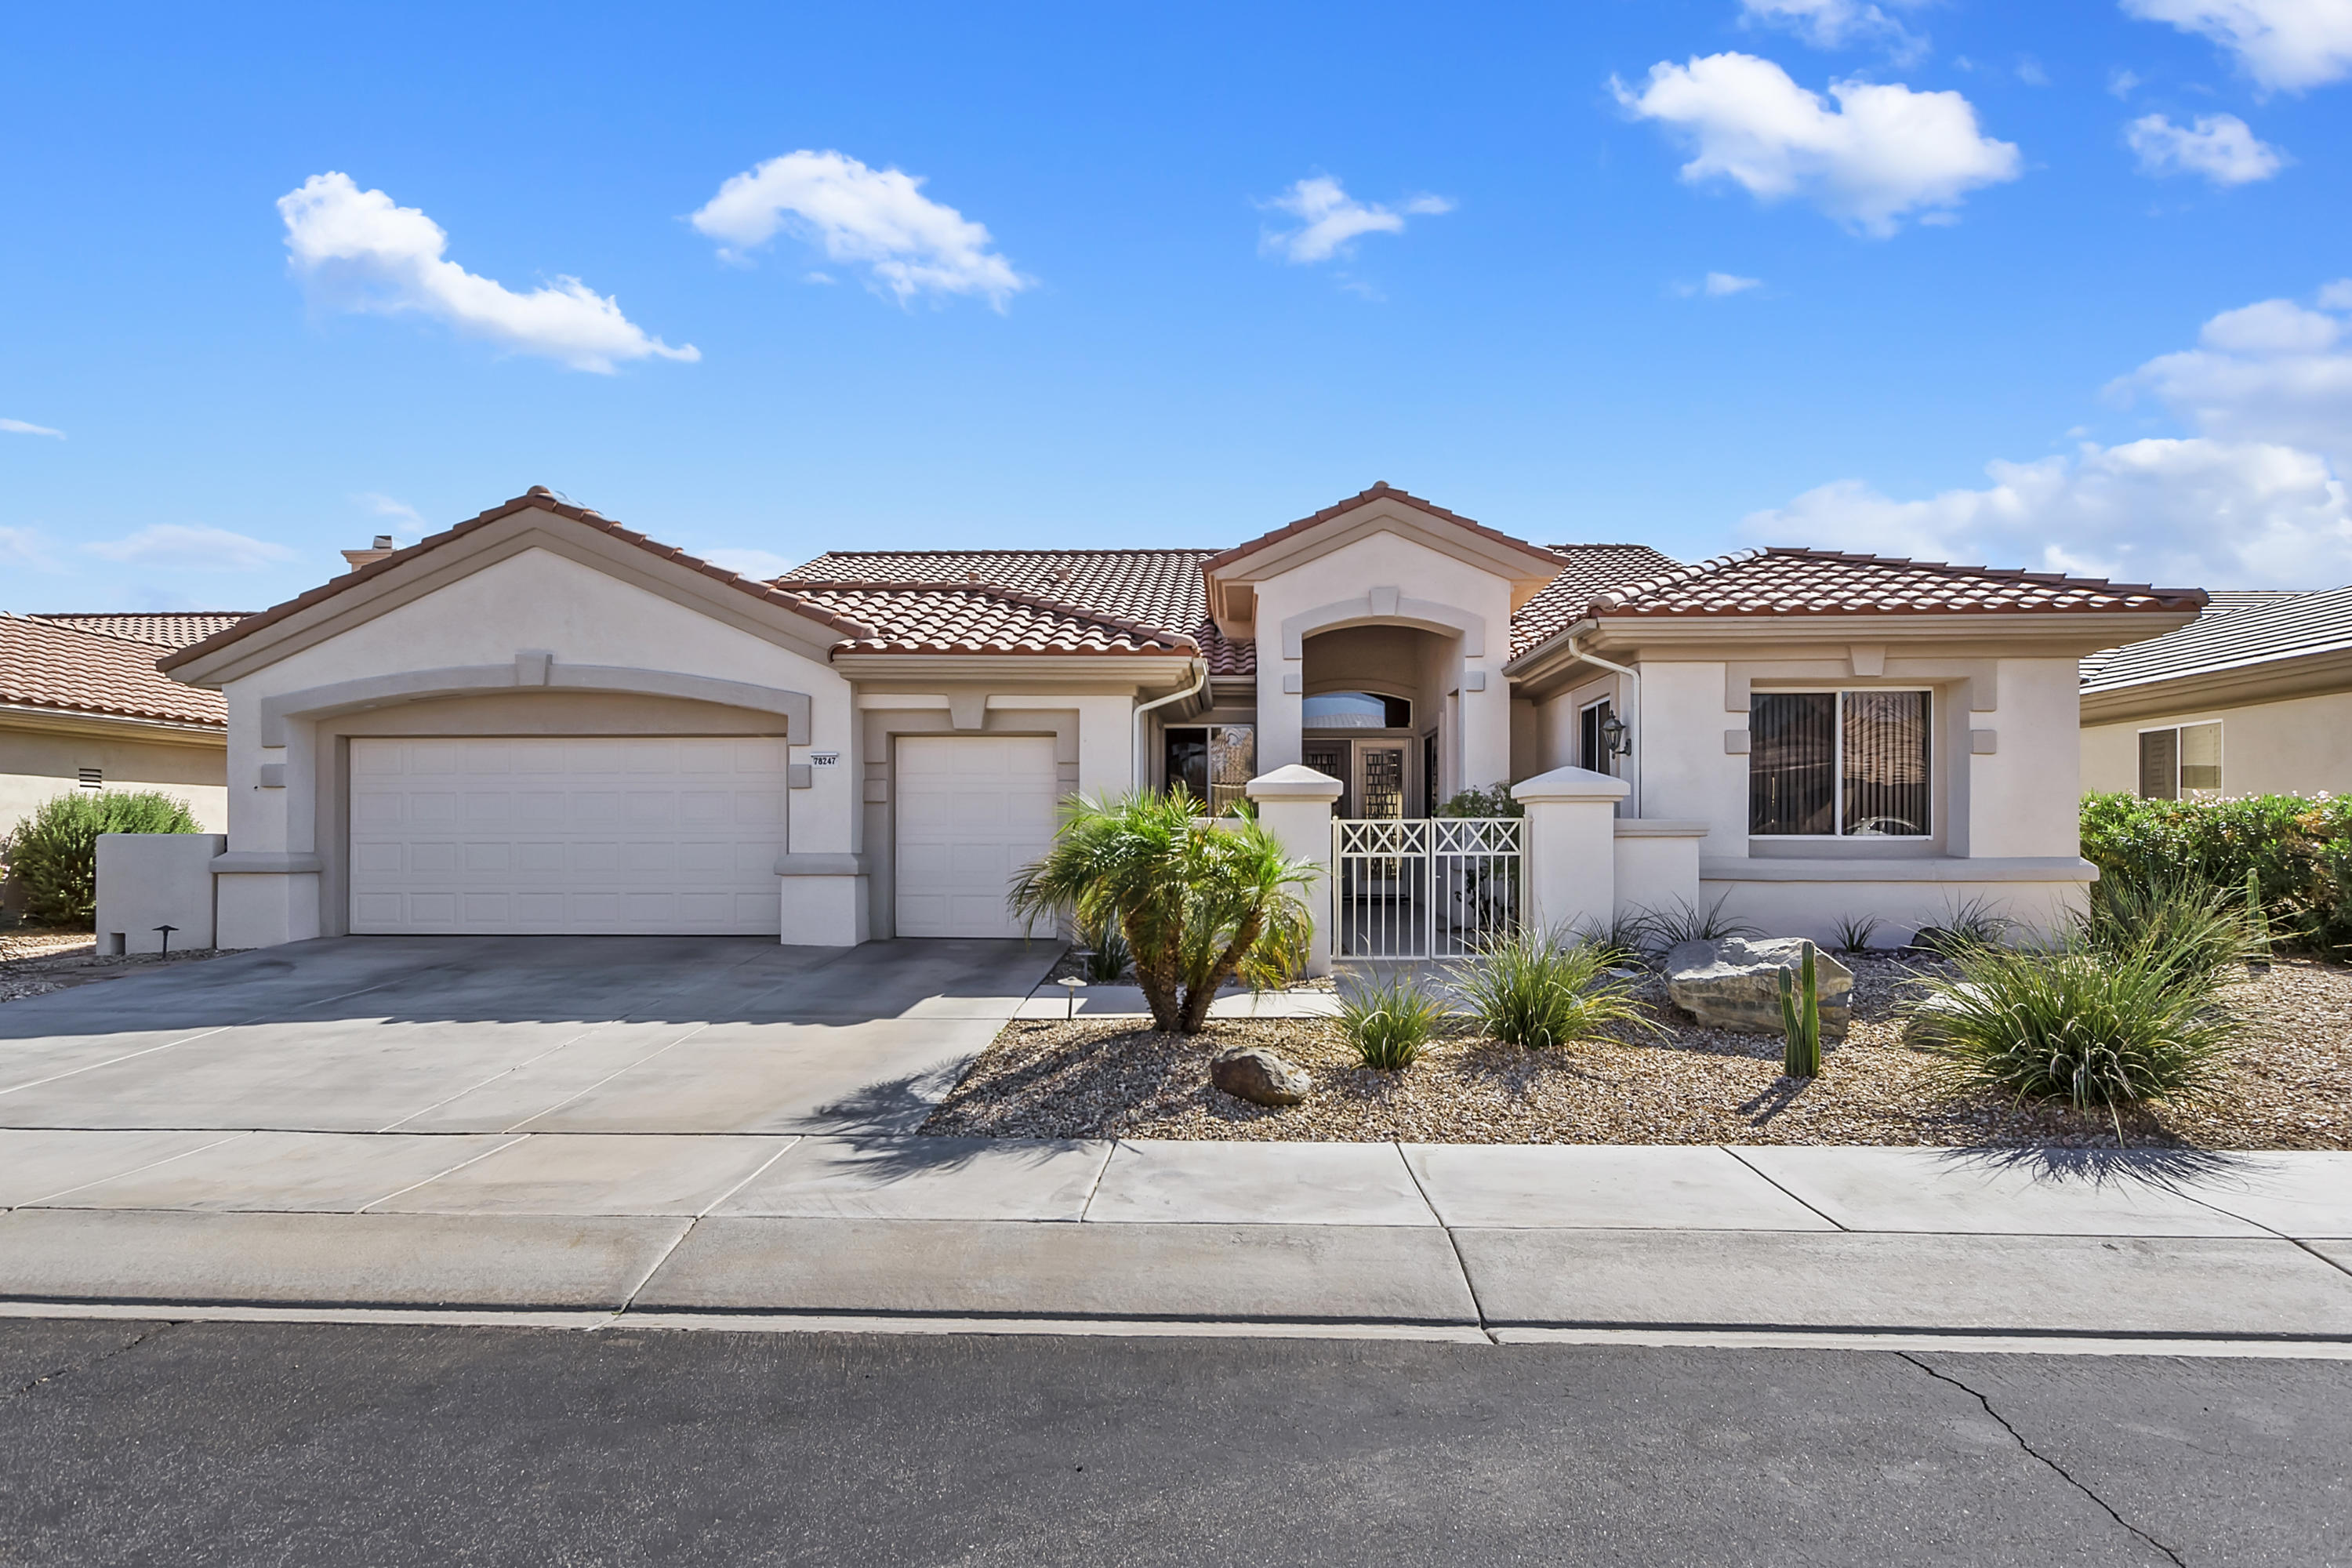 Photo of 78247 Arbor Glen Road, Palm Desert, CA 92211